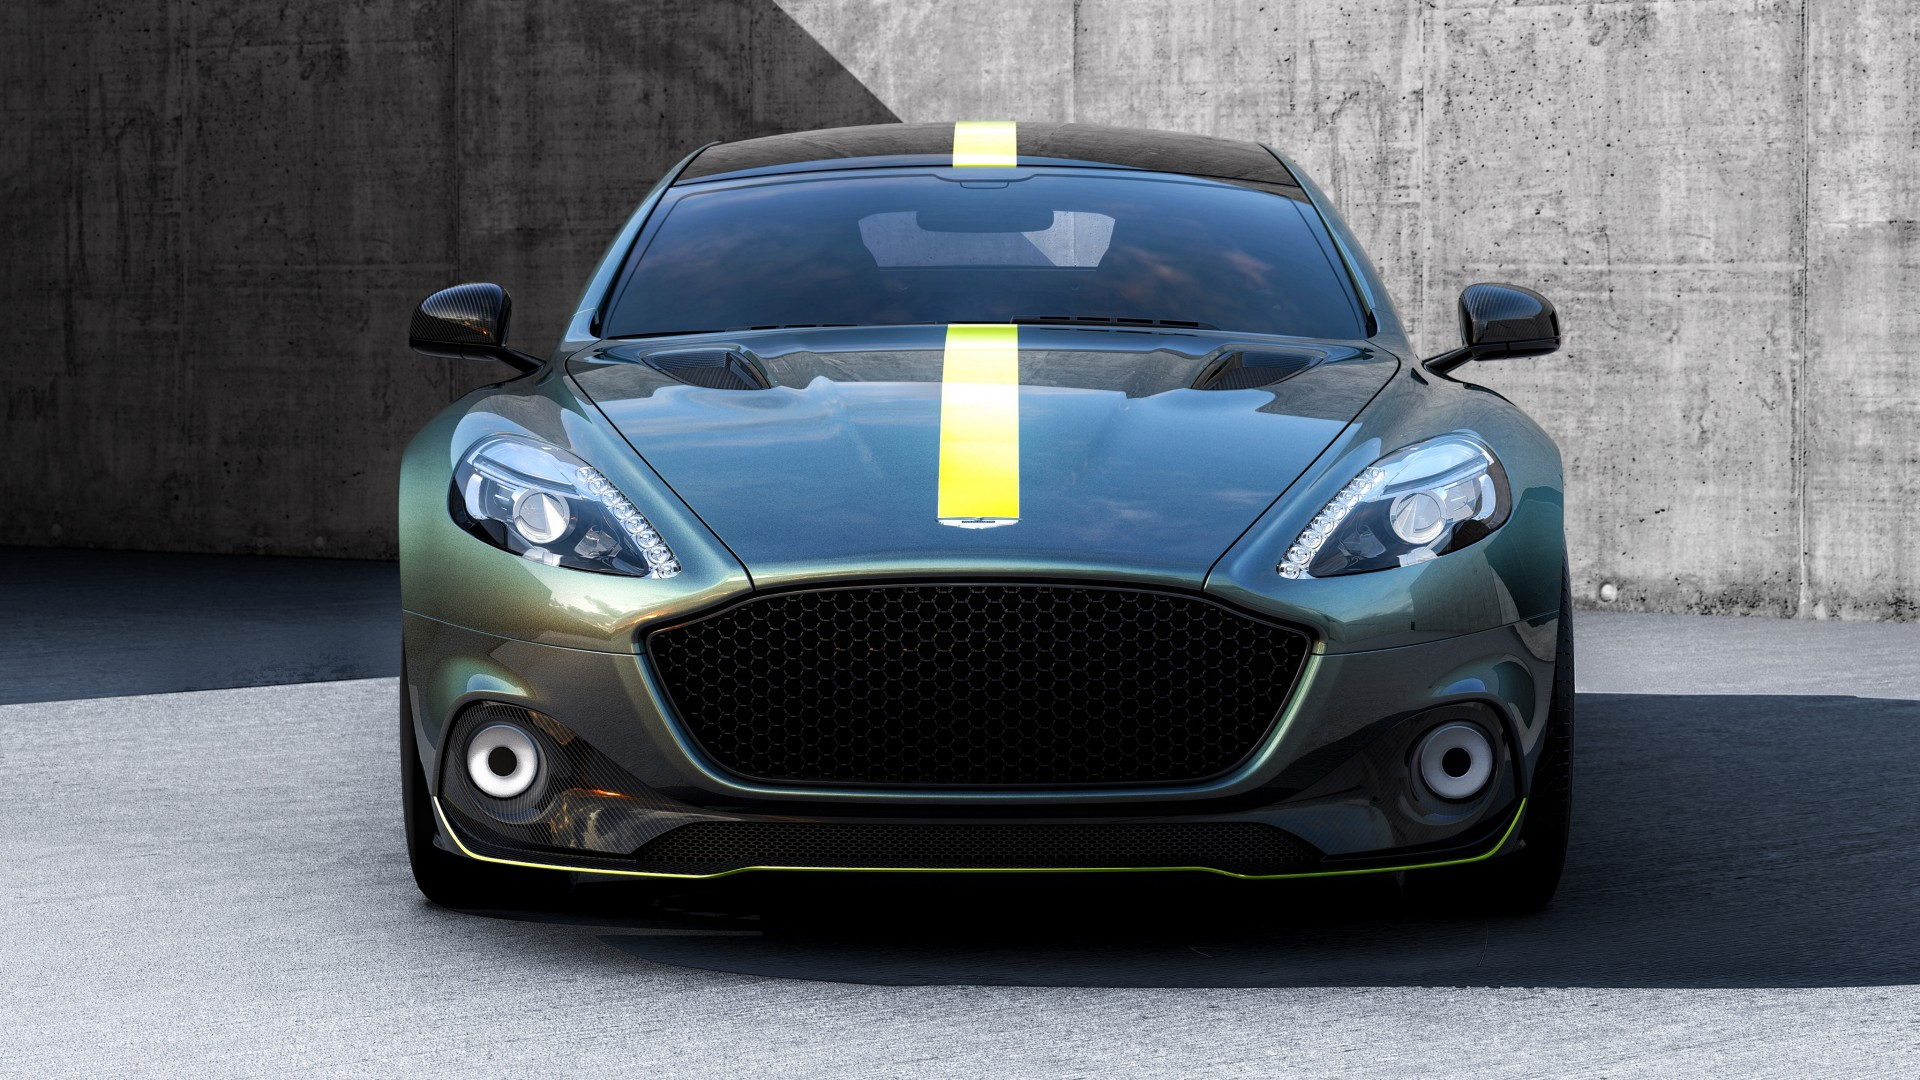 2018 Aston Martin Rapide AMR Wallpaper | HD Car Wallpapers ...